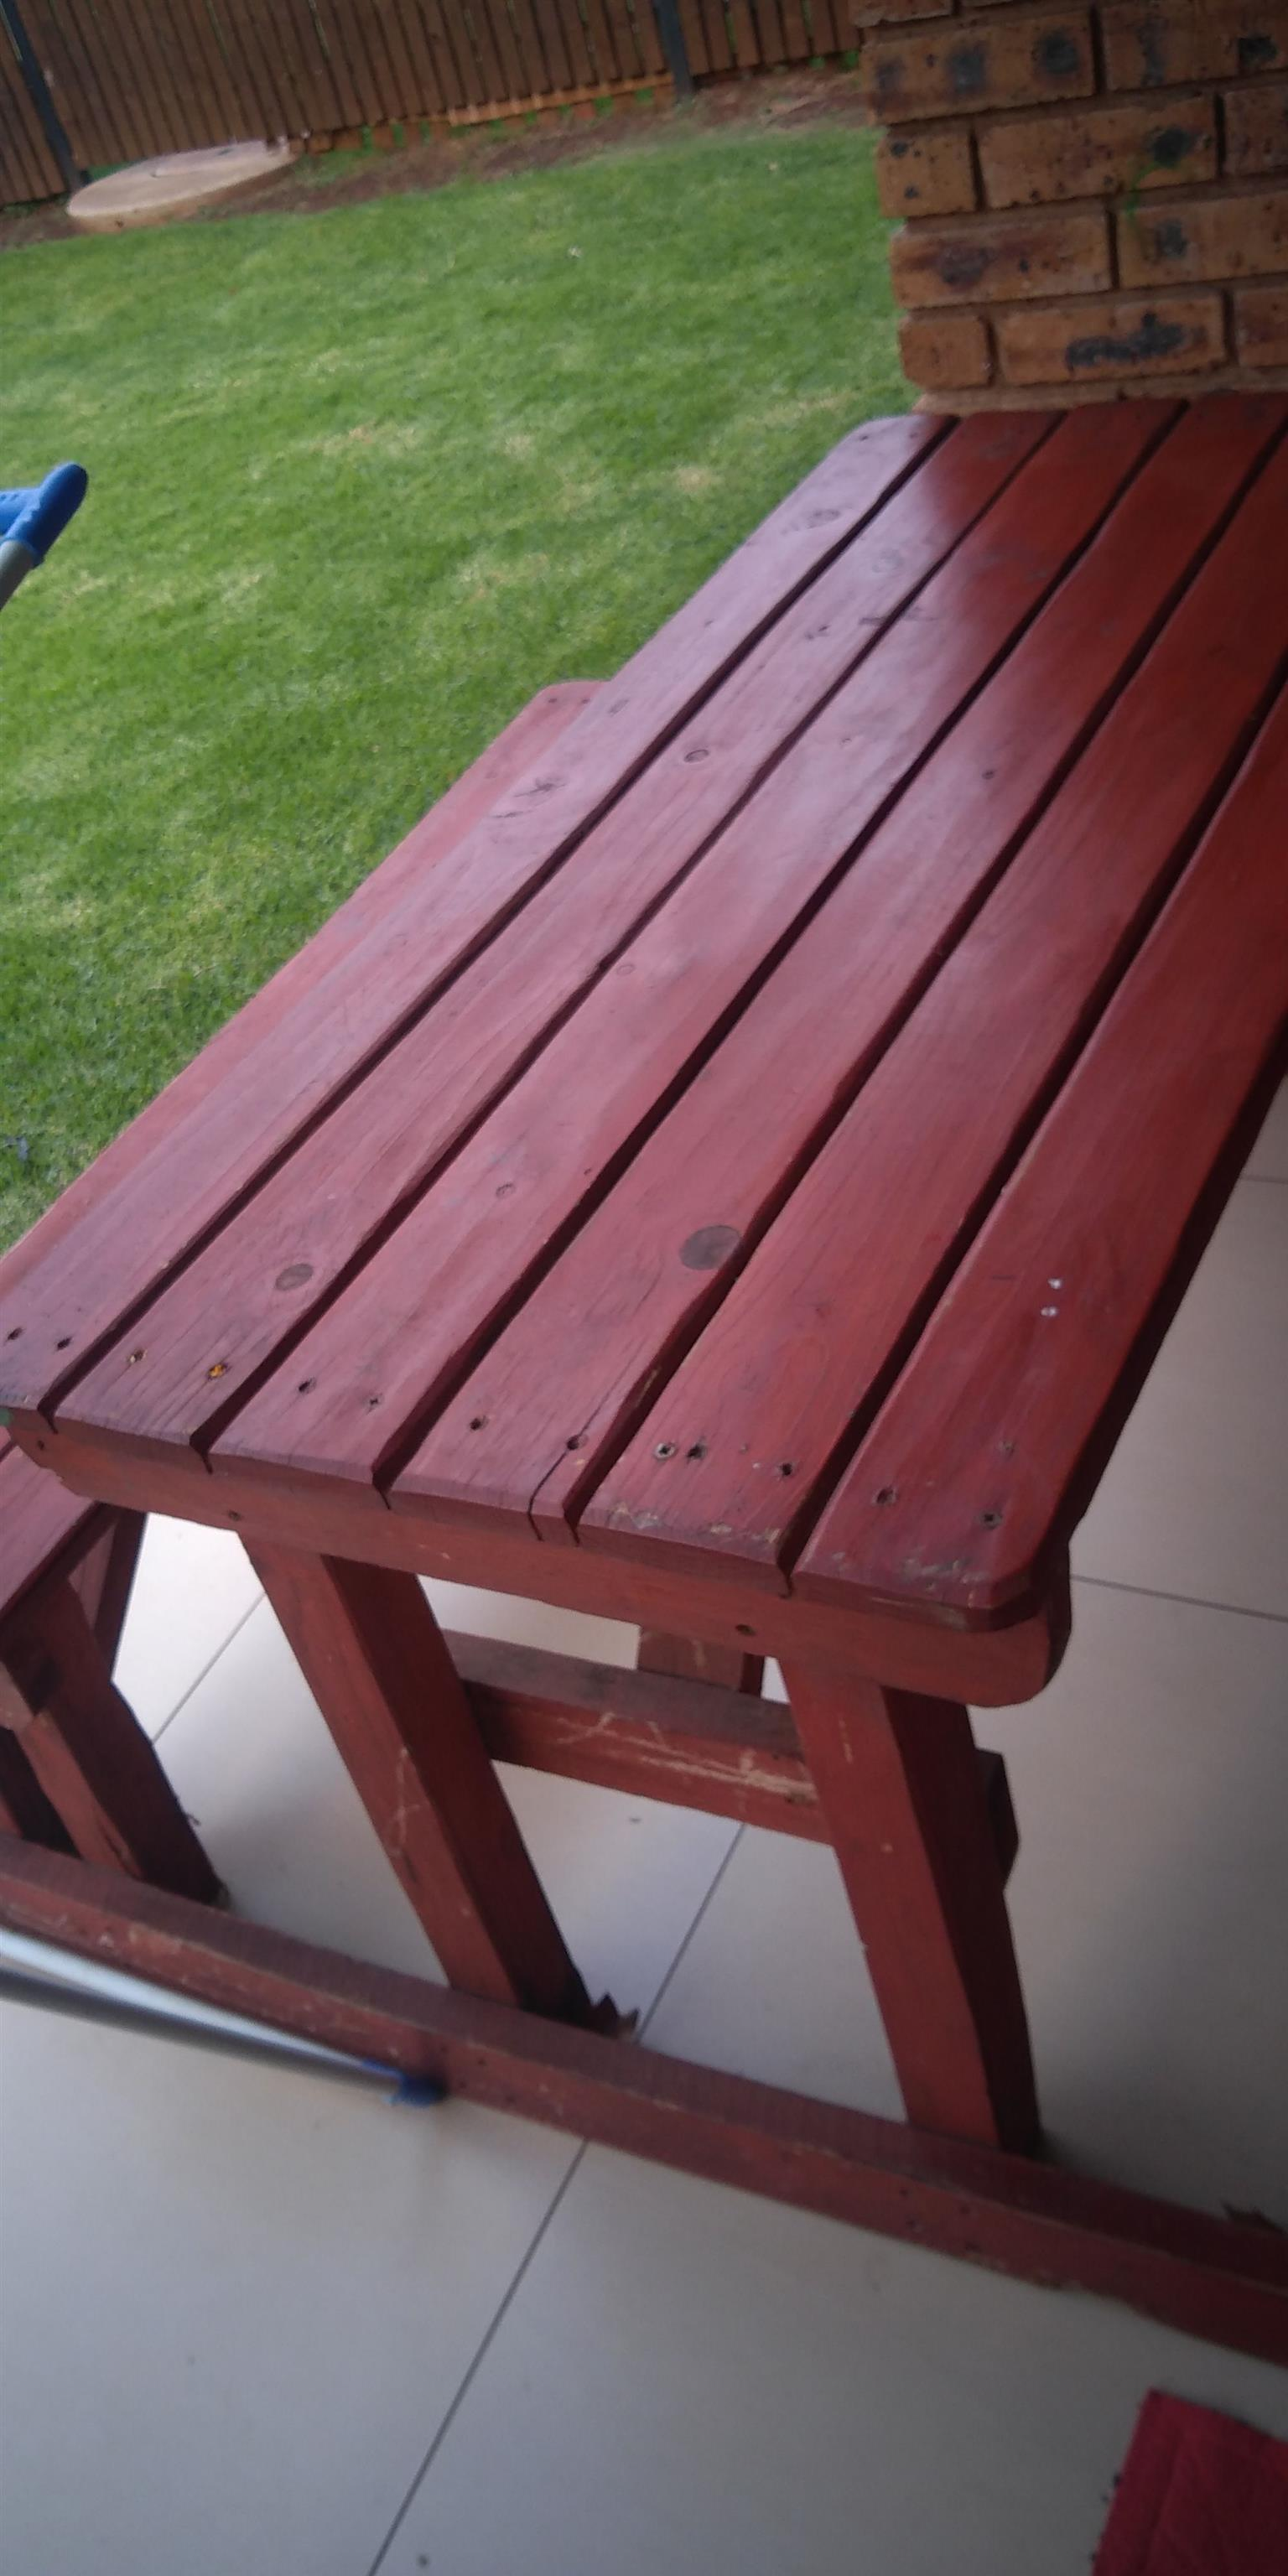 Outdoor beanch (wooden table)